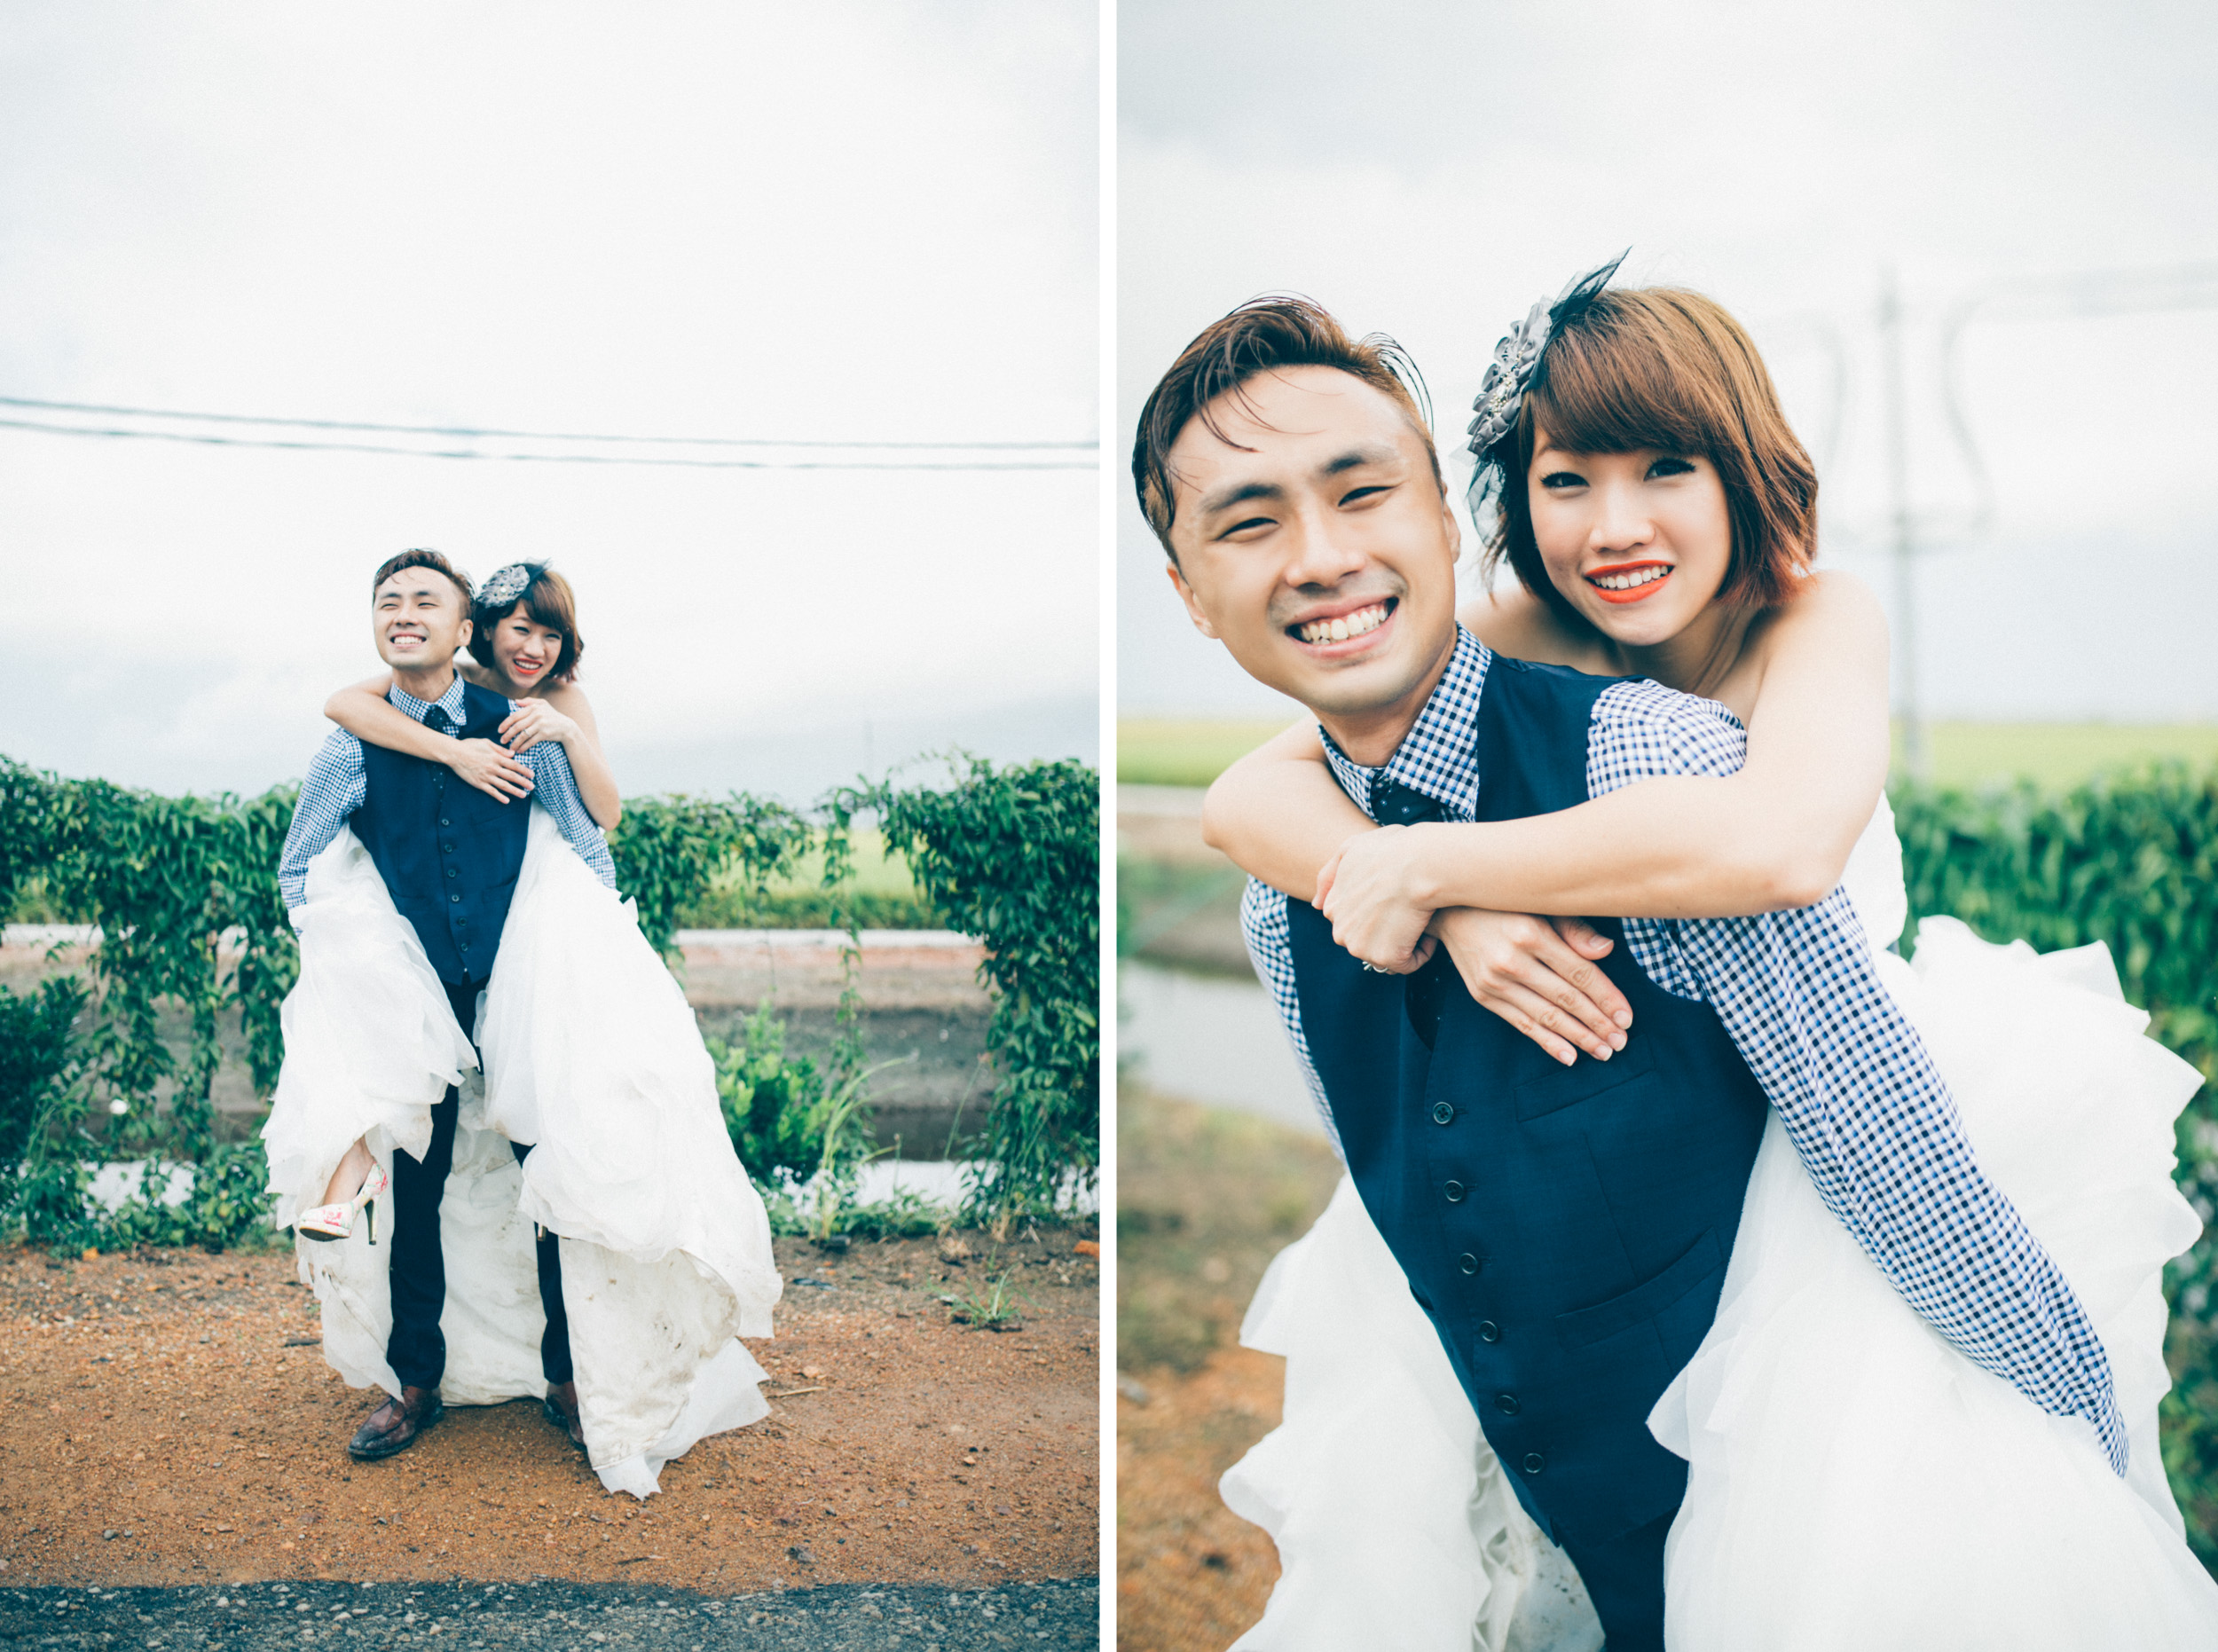 20a-hellojanelee-singapore-malaysia-wedding-photographer-prewedding-carrie-sekinchan